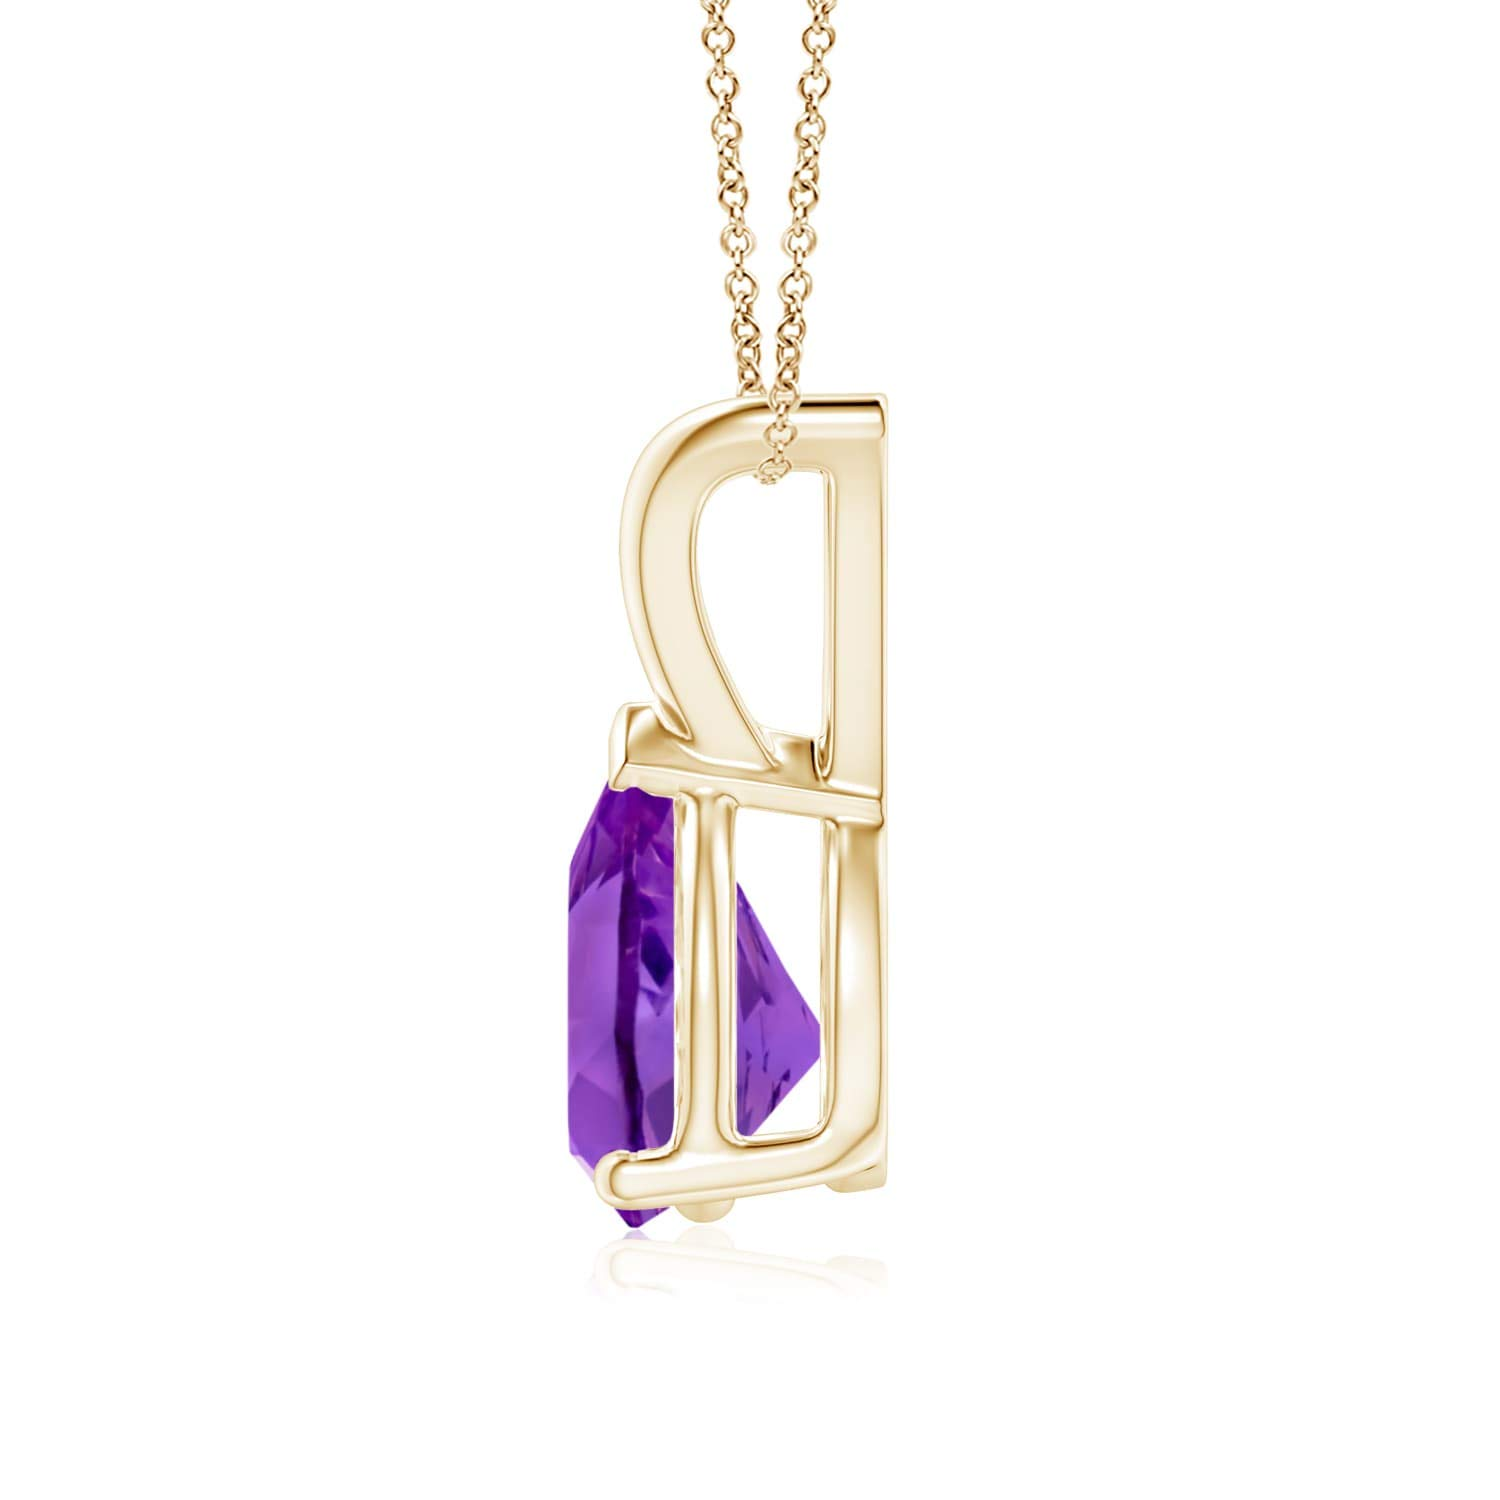 8x6mm Amethyst V-Bale Pear-Shaped Amethyst Solitaire Pendant